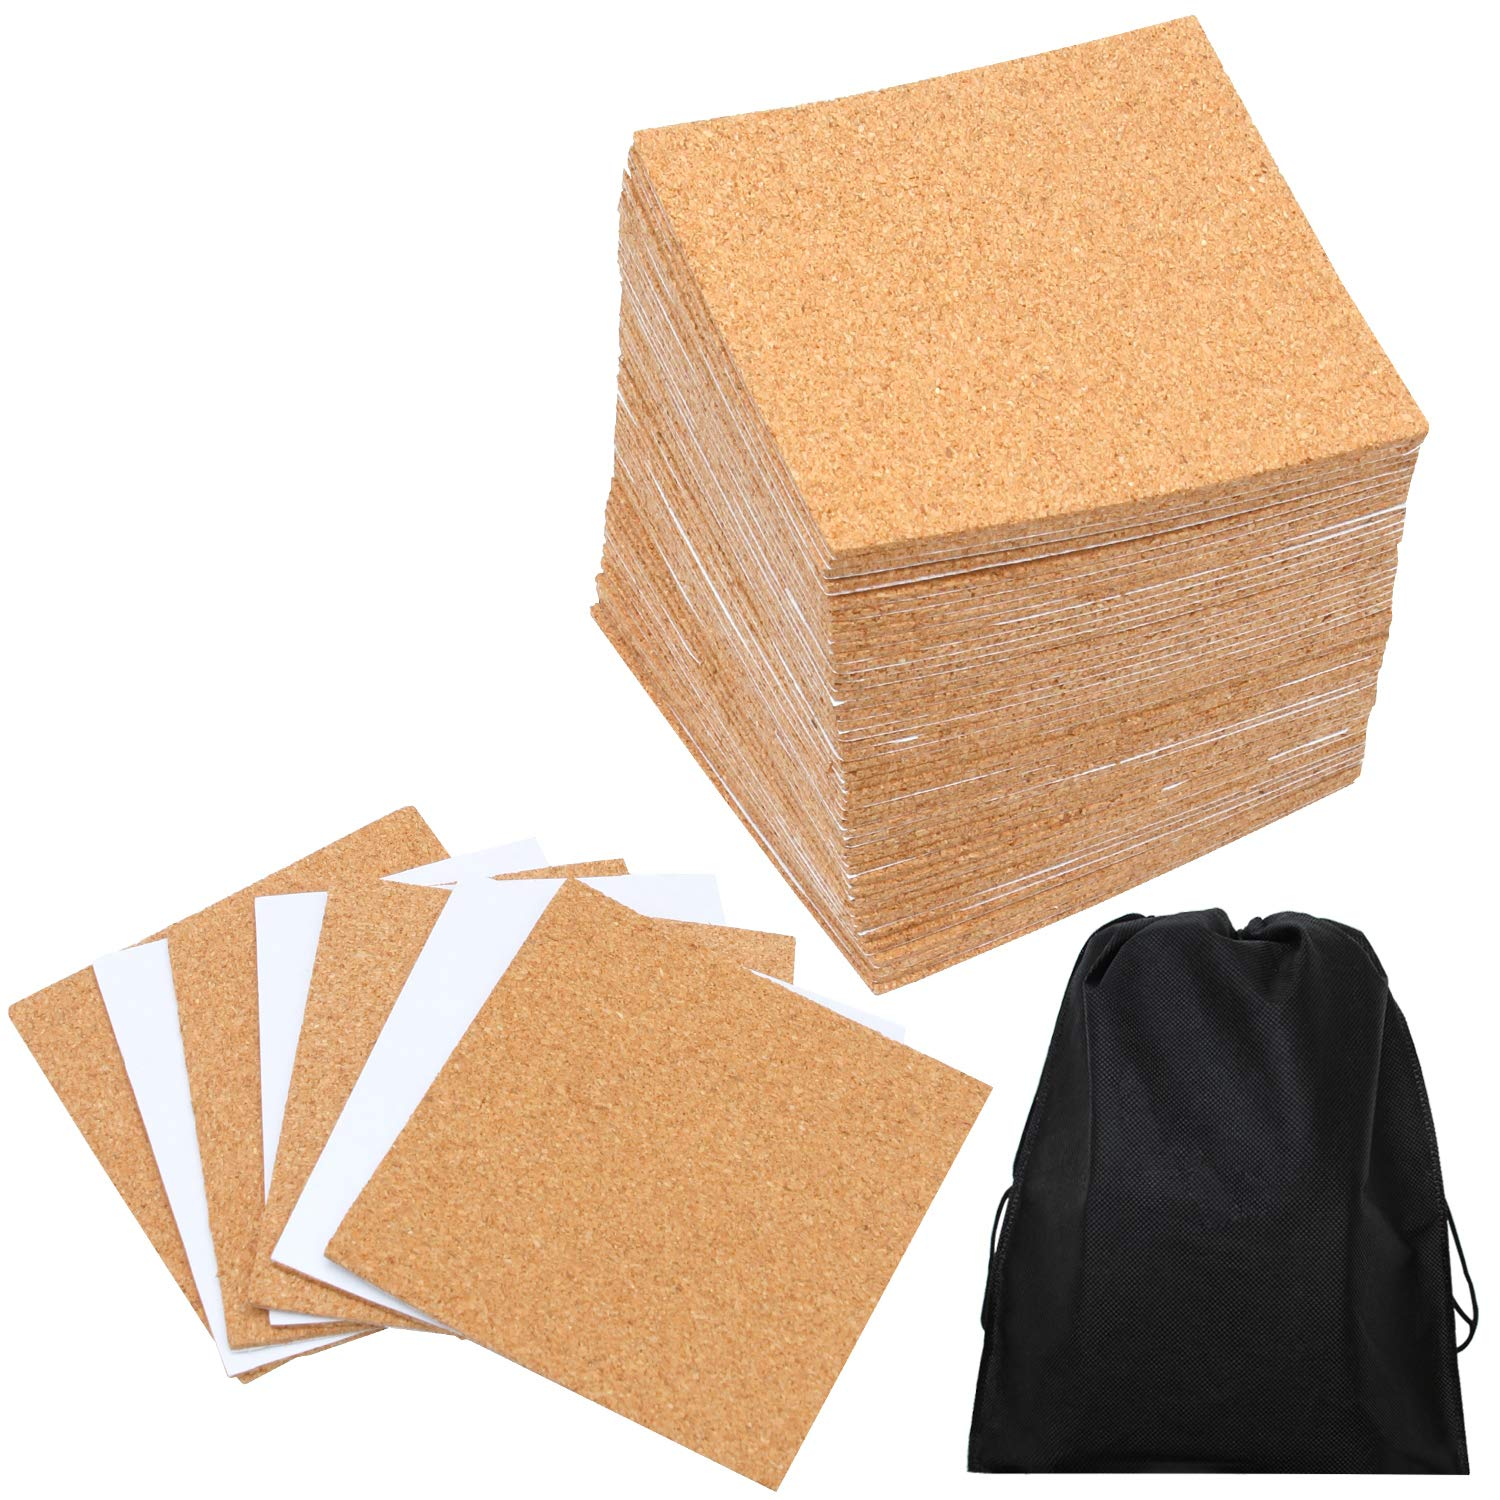 Resinta 80 Pack Self-Adhesive Cork Squares 4 Inches x 4 Inches Cork Backing Sheets Mini Wall Cork Tiles with a Storage Bag for Coasters and DIY Crafts